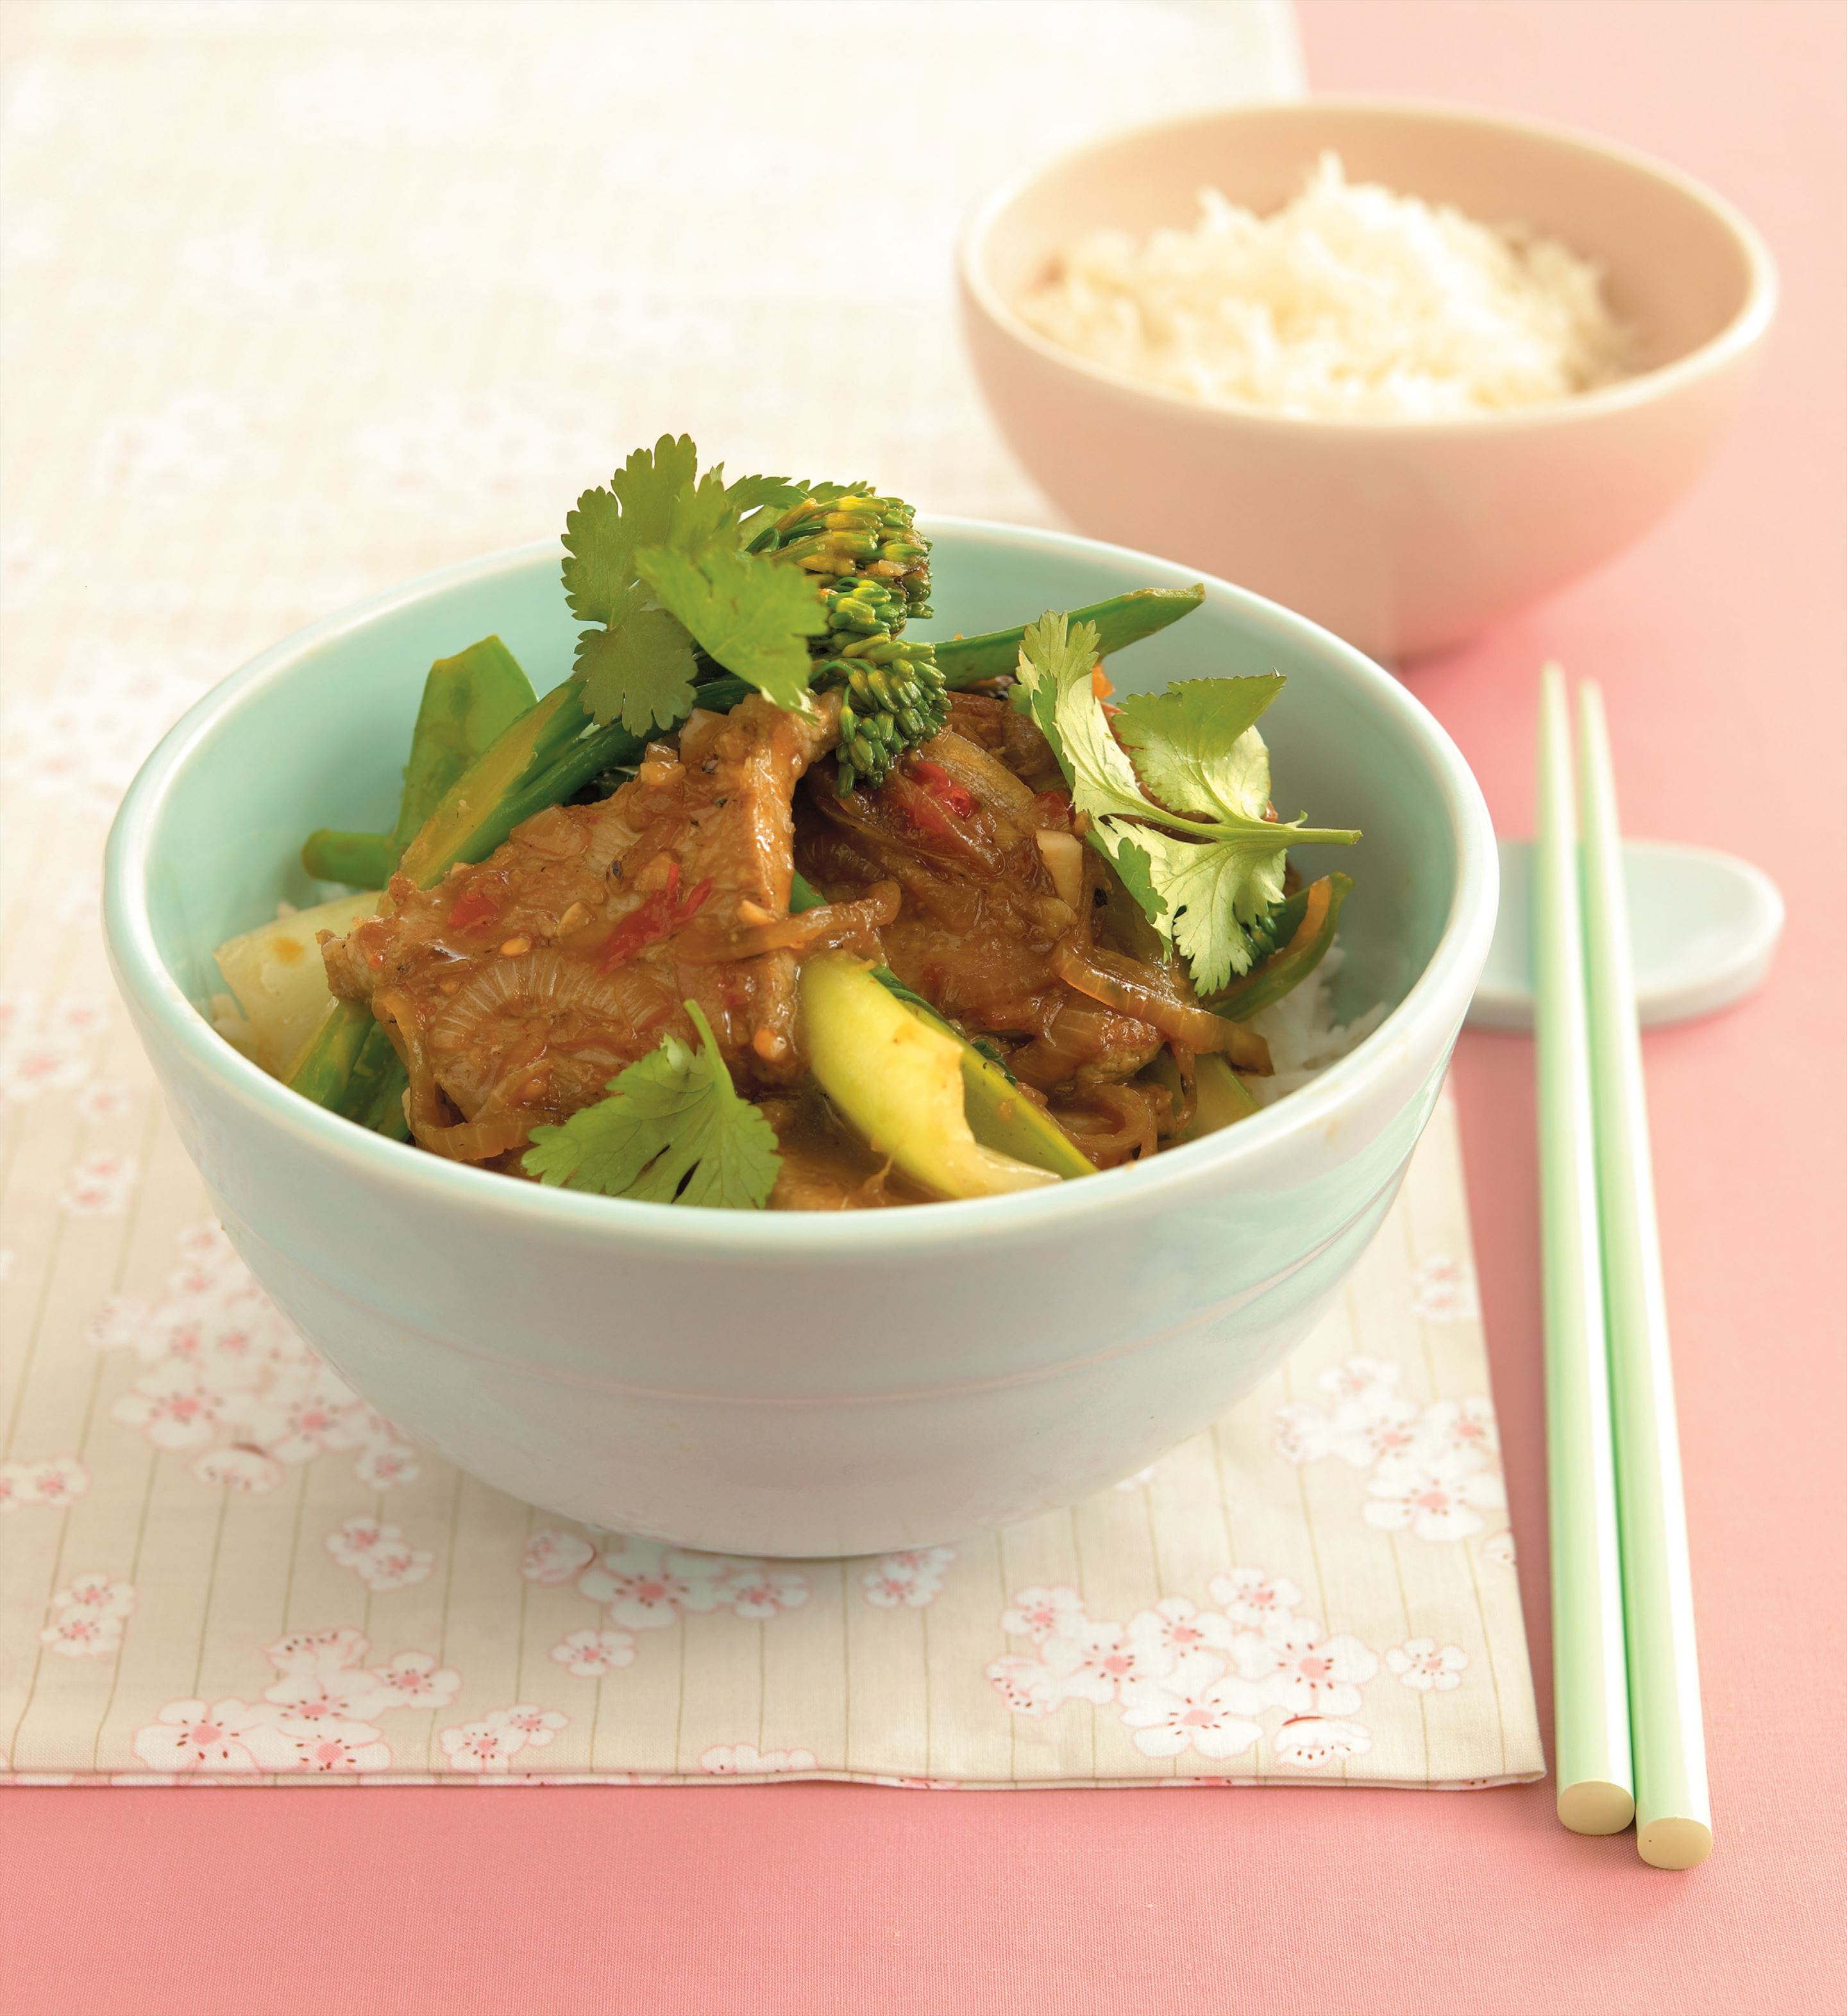 Pork and Asian greens stir-fry